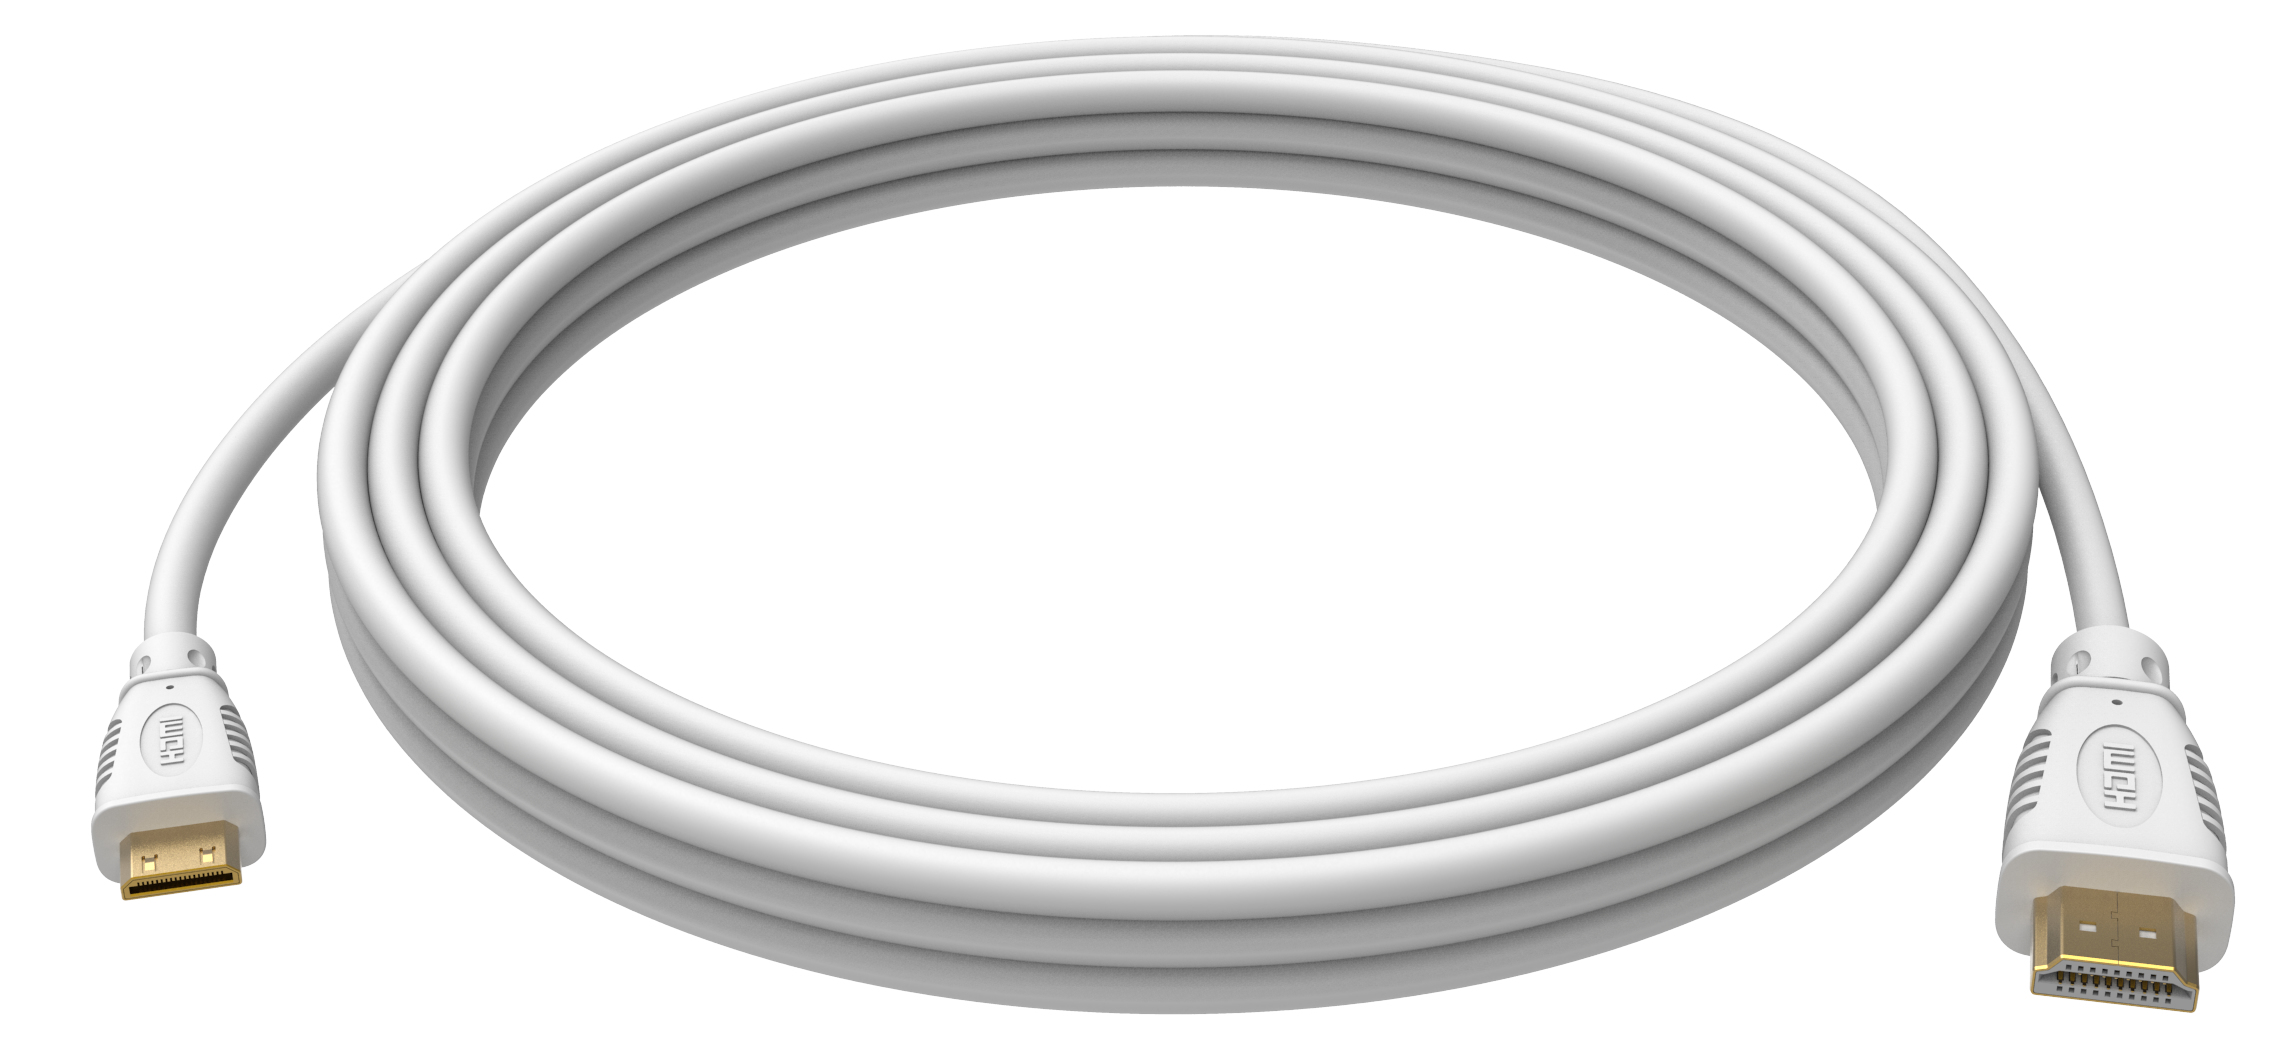 Vision TECHCONNECT 1M MINI-HDMI to HDMI CABLE Engineered connectivity solution, White, 4K compliant, High-S